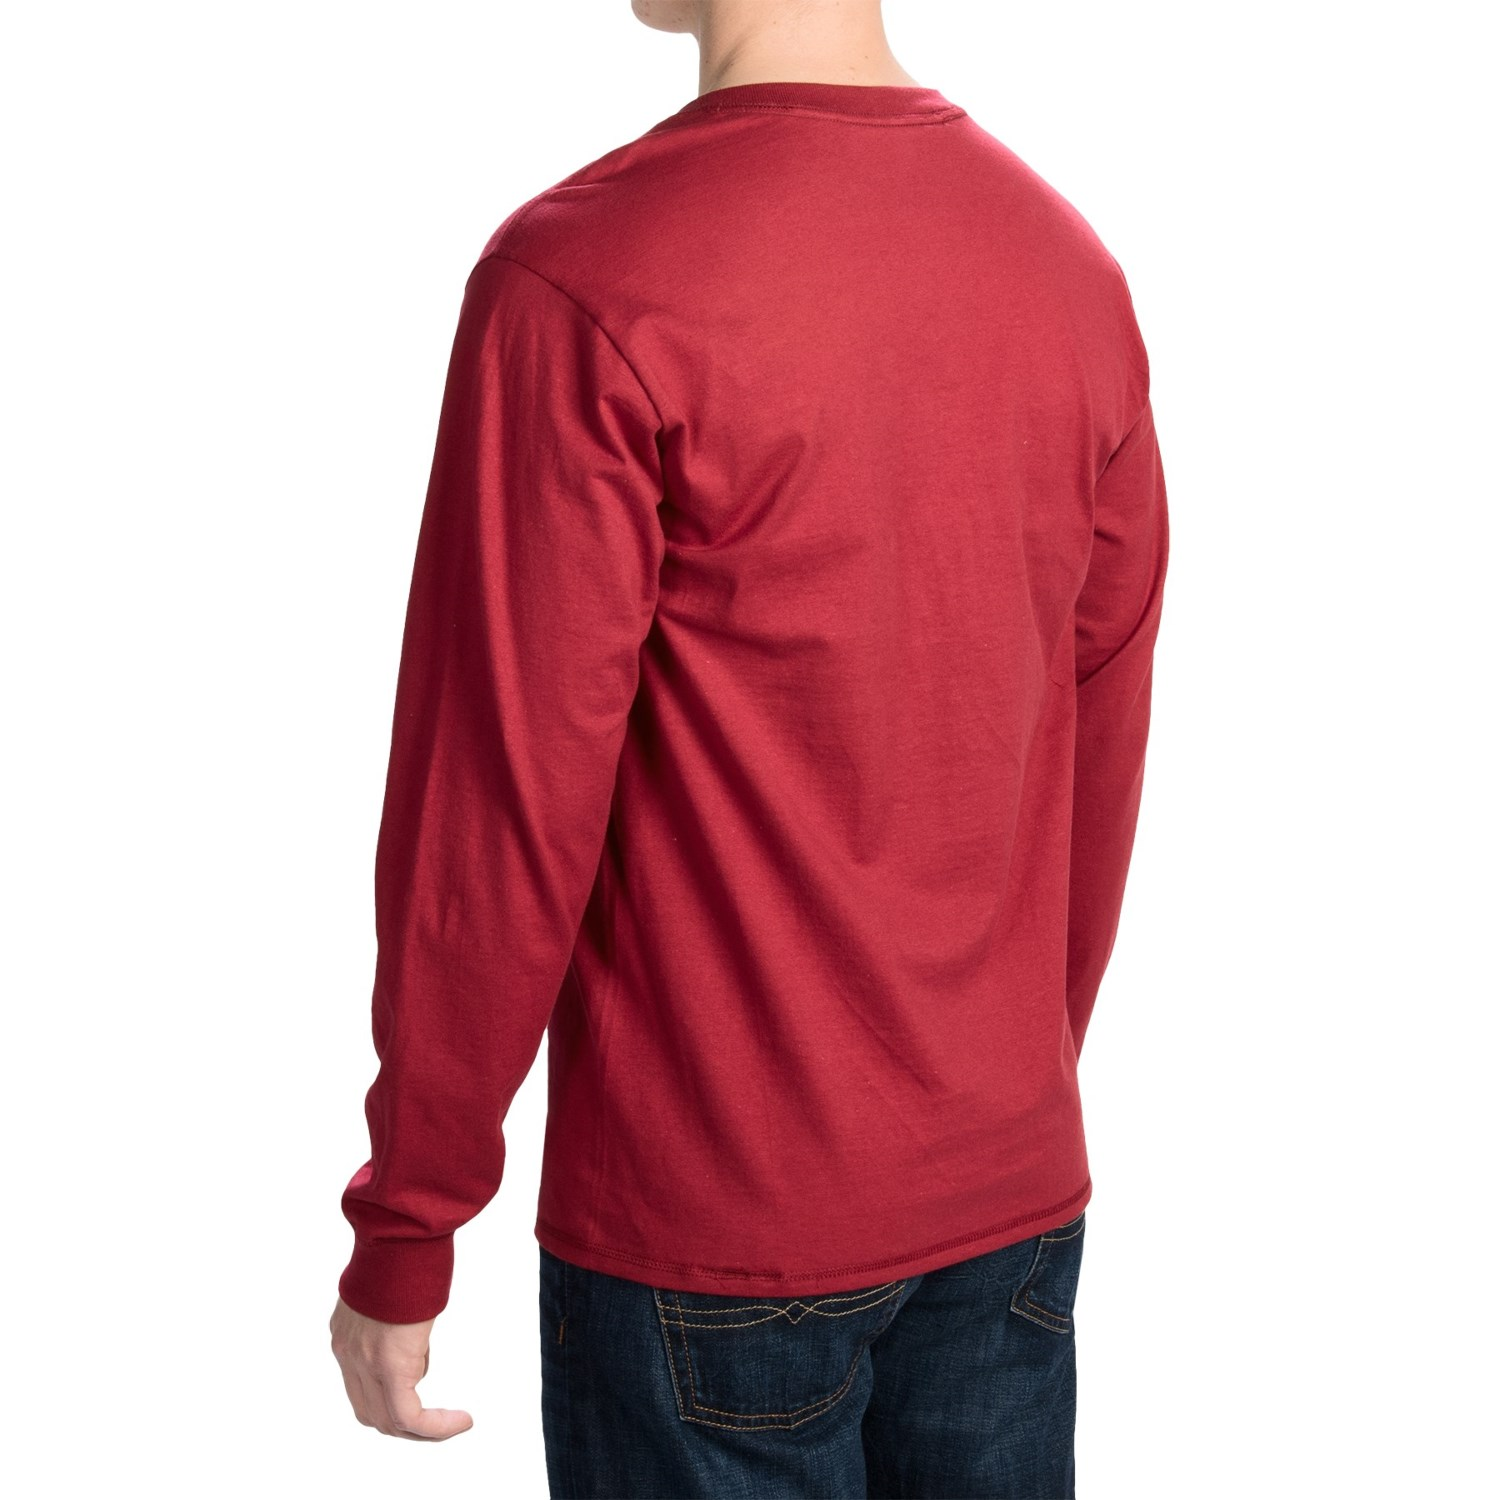 Hanes beefy t henley shirt for men save 66 for Long sleeve henley shirts for men